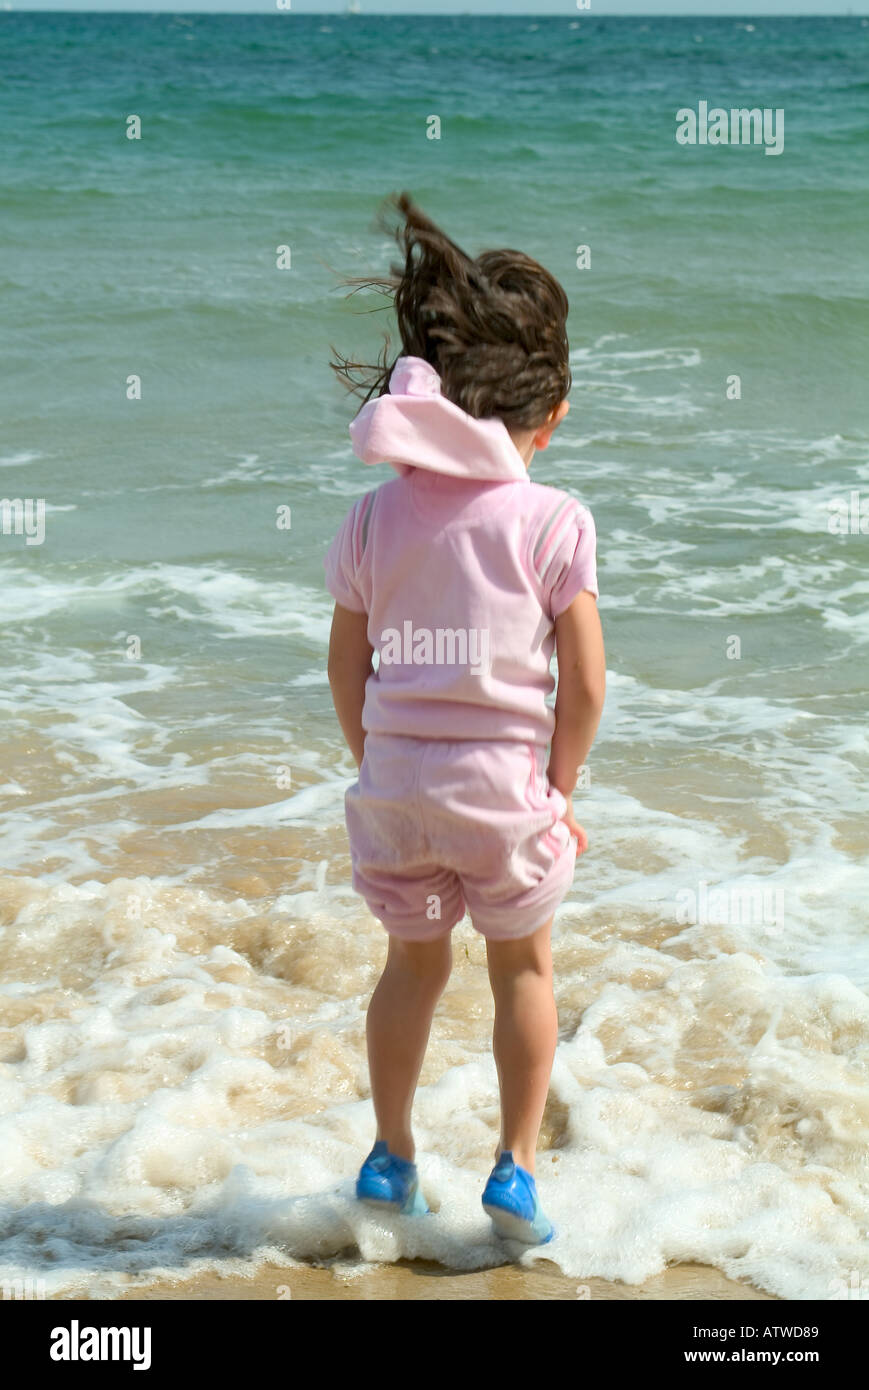 a young girl paddling at the edge of the sea - Stock Image